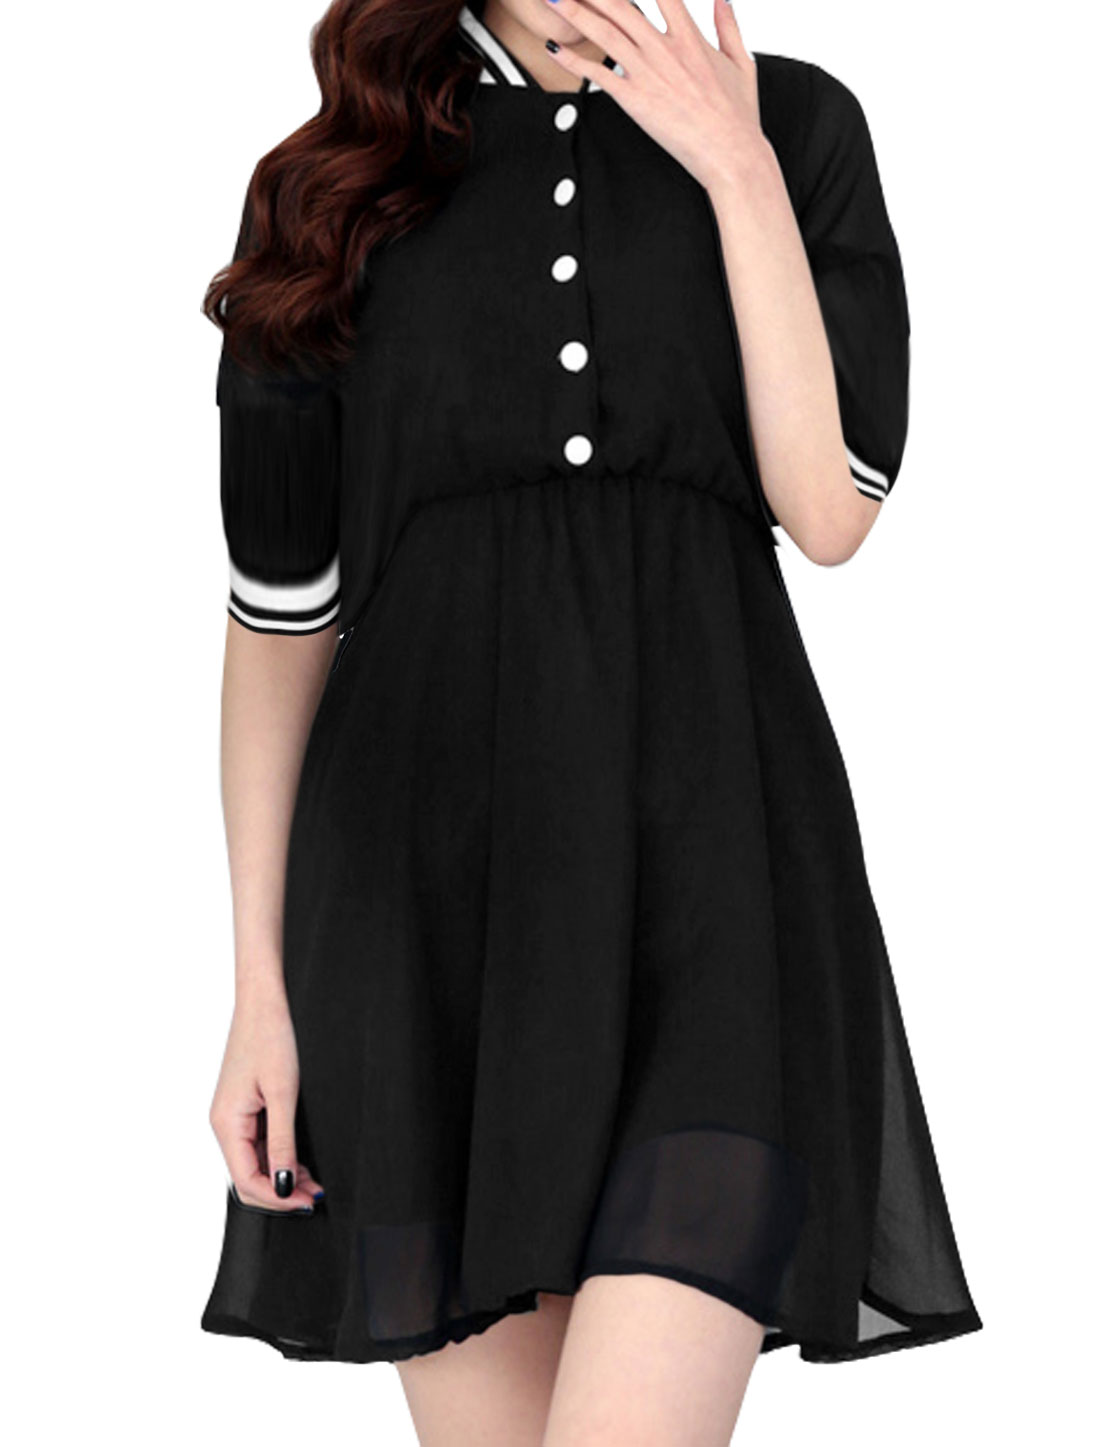 Woman Collared 3/4 Sleeves Elastic Waist Chiffon Dress Black XS